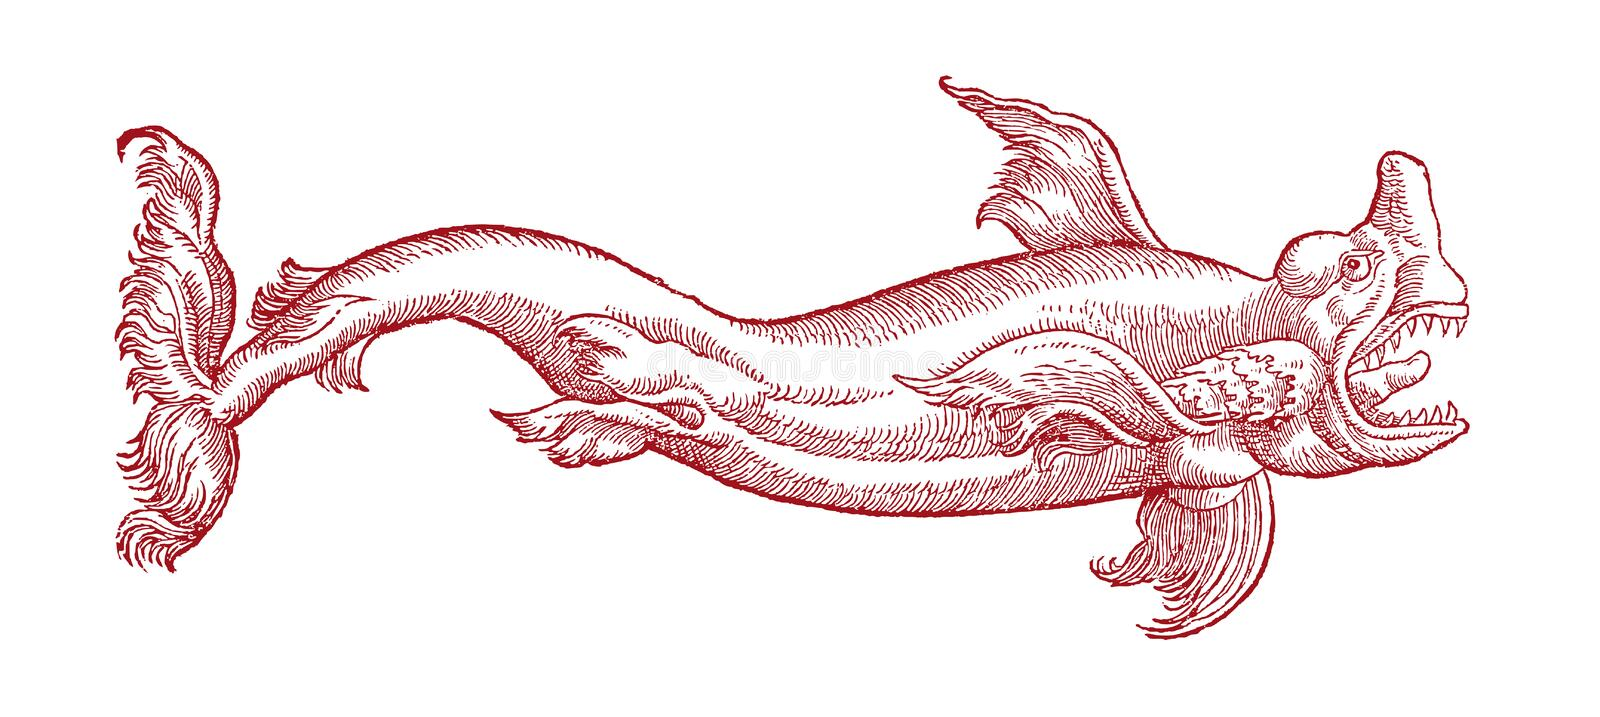 Shark with wide open mouth. Illustration. Shark with wide open mouth in profile view. Illustration after a historical or vintage woodcut from the 16th century royalty free illustration